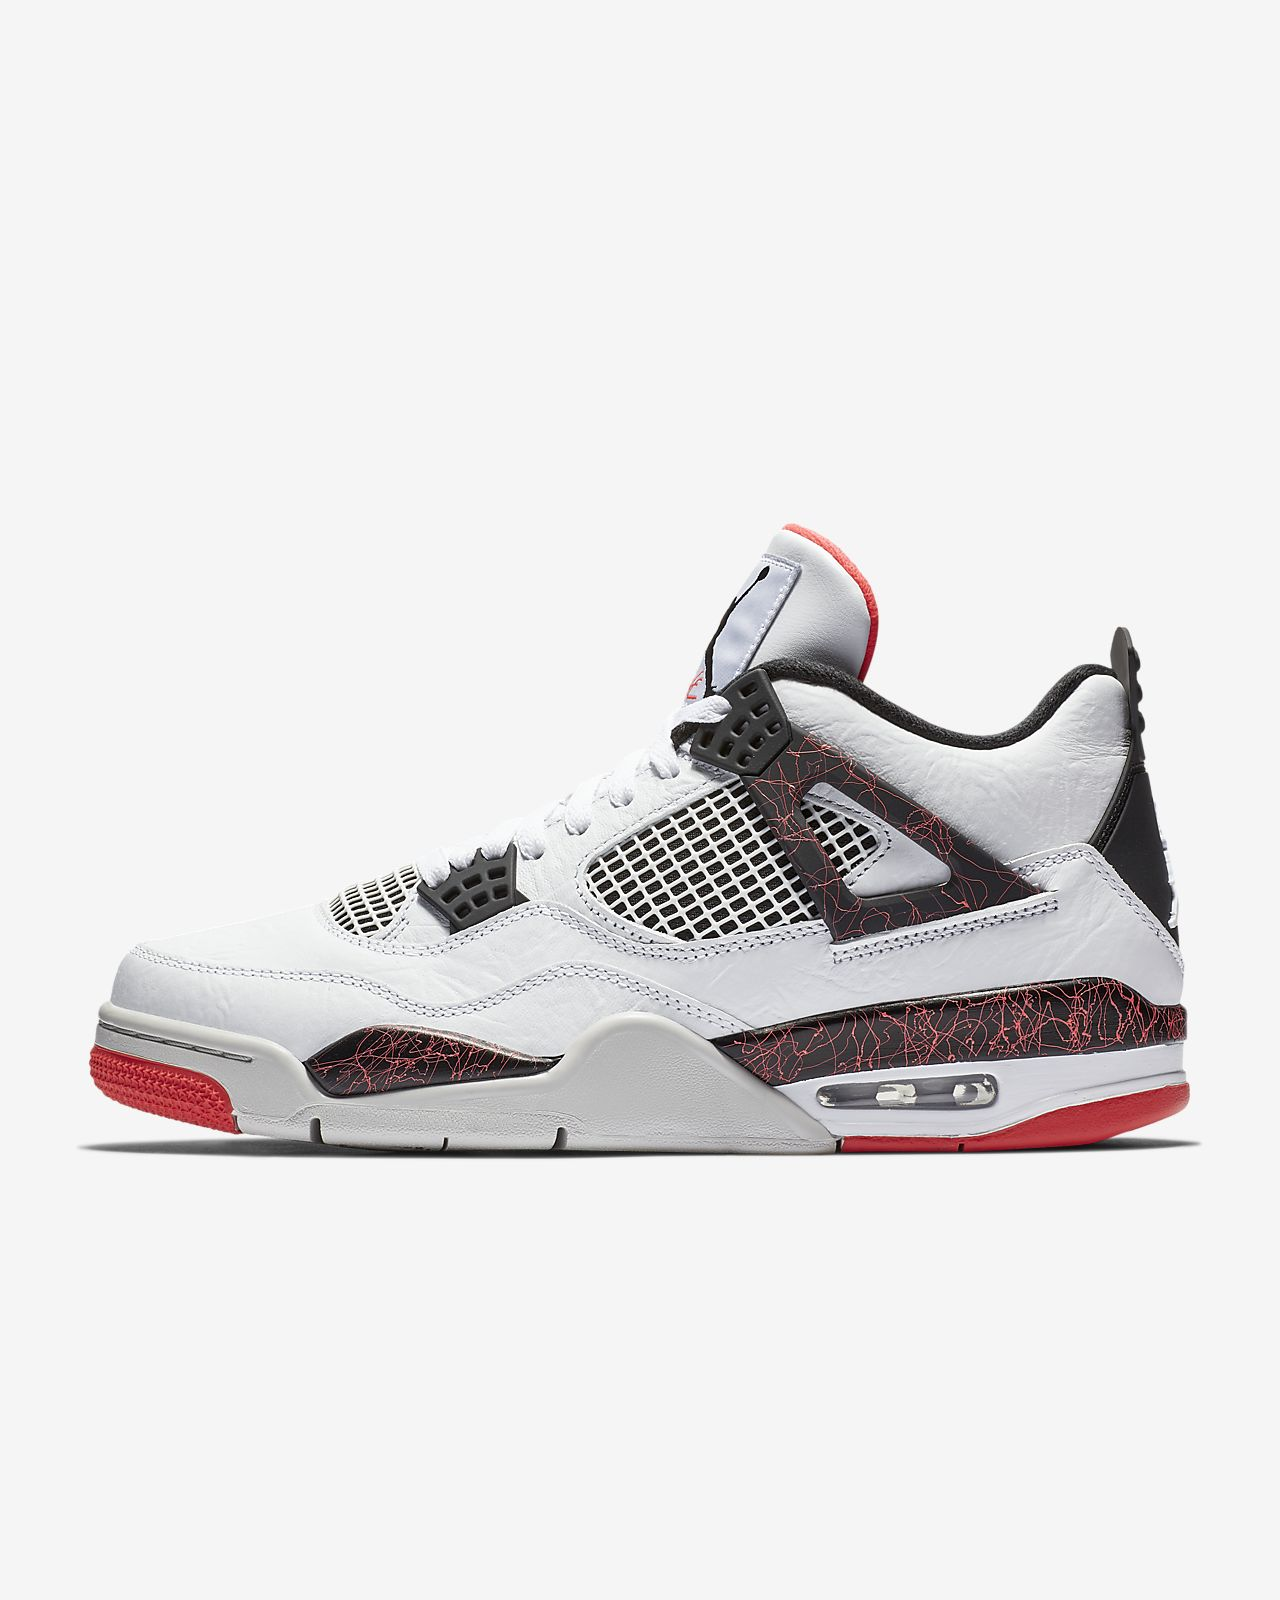 8bd520856 Air Jordan 4 Retro Men s Shoe. Nike.com ID